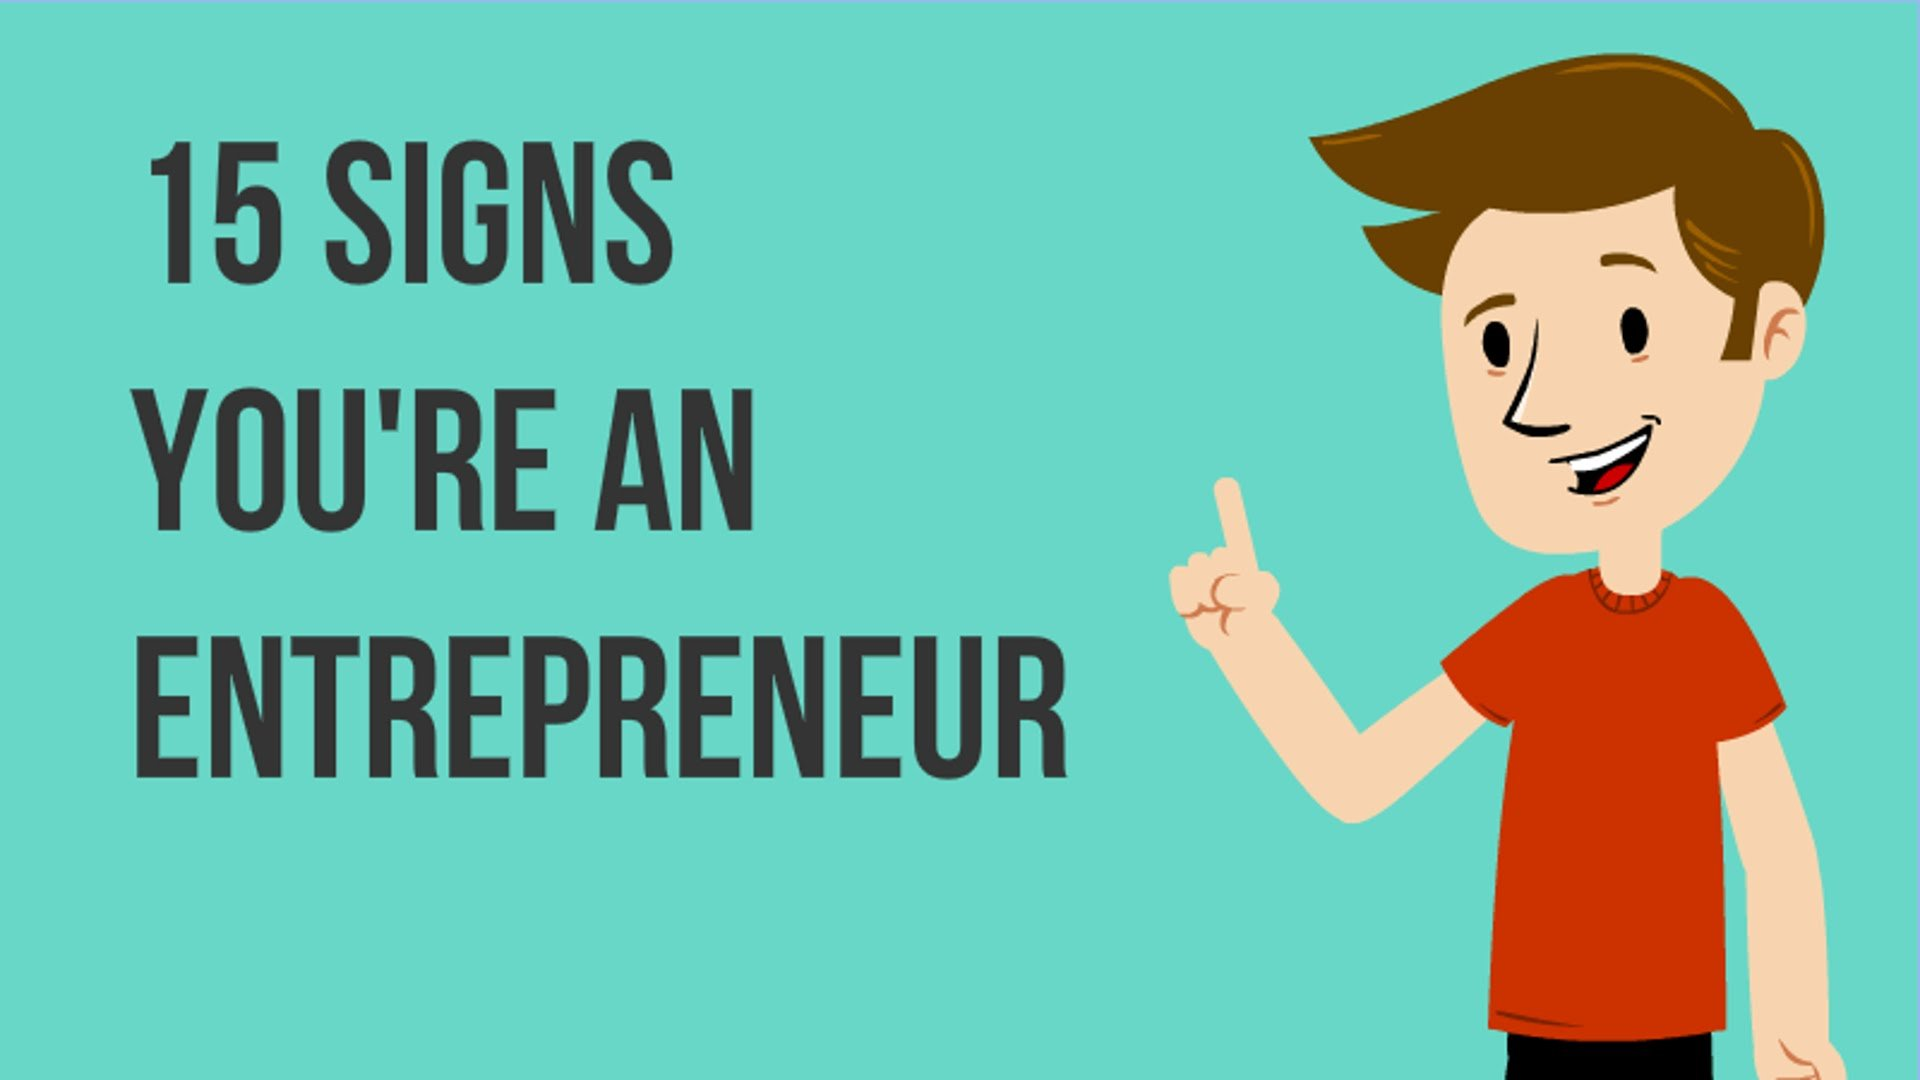 15 Signs you are an Entrepreneur